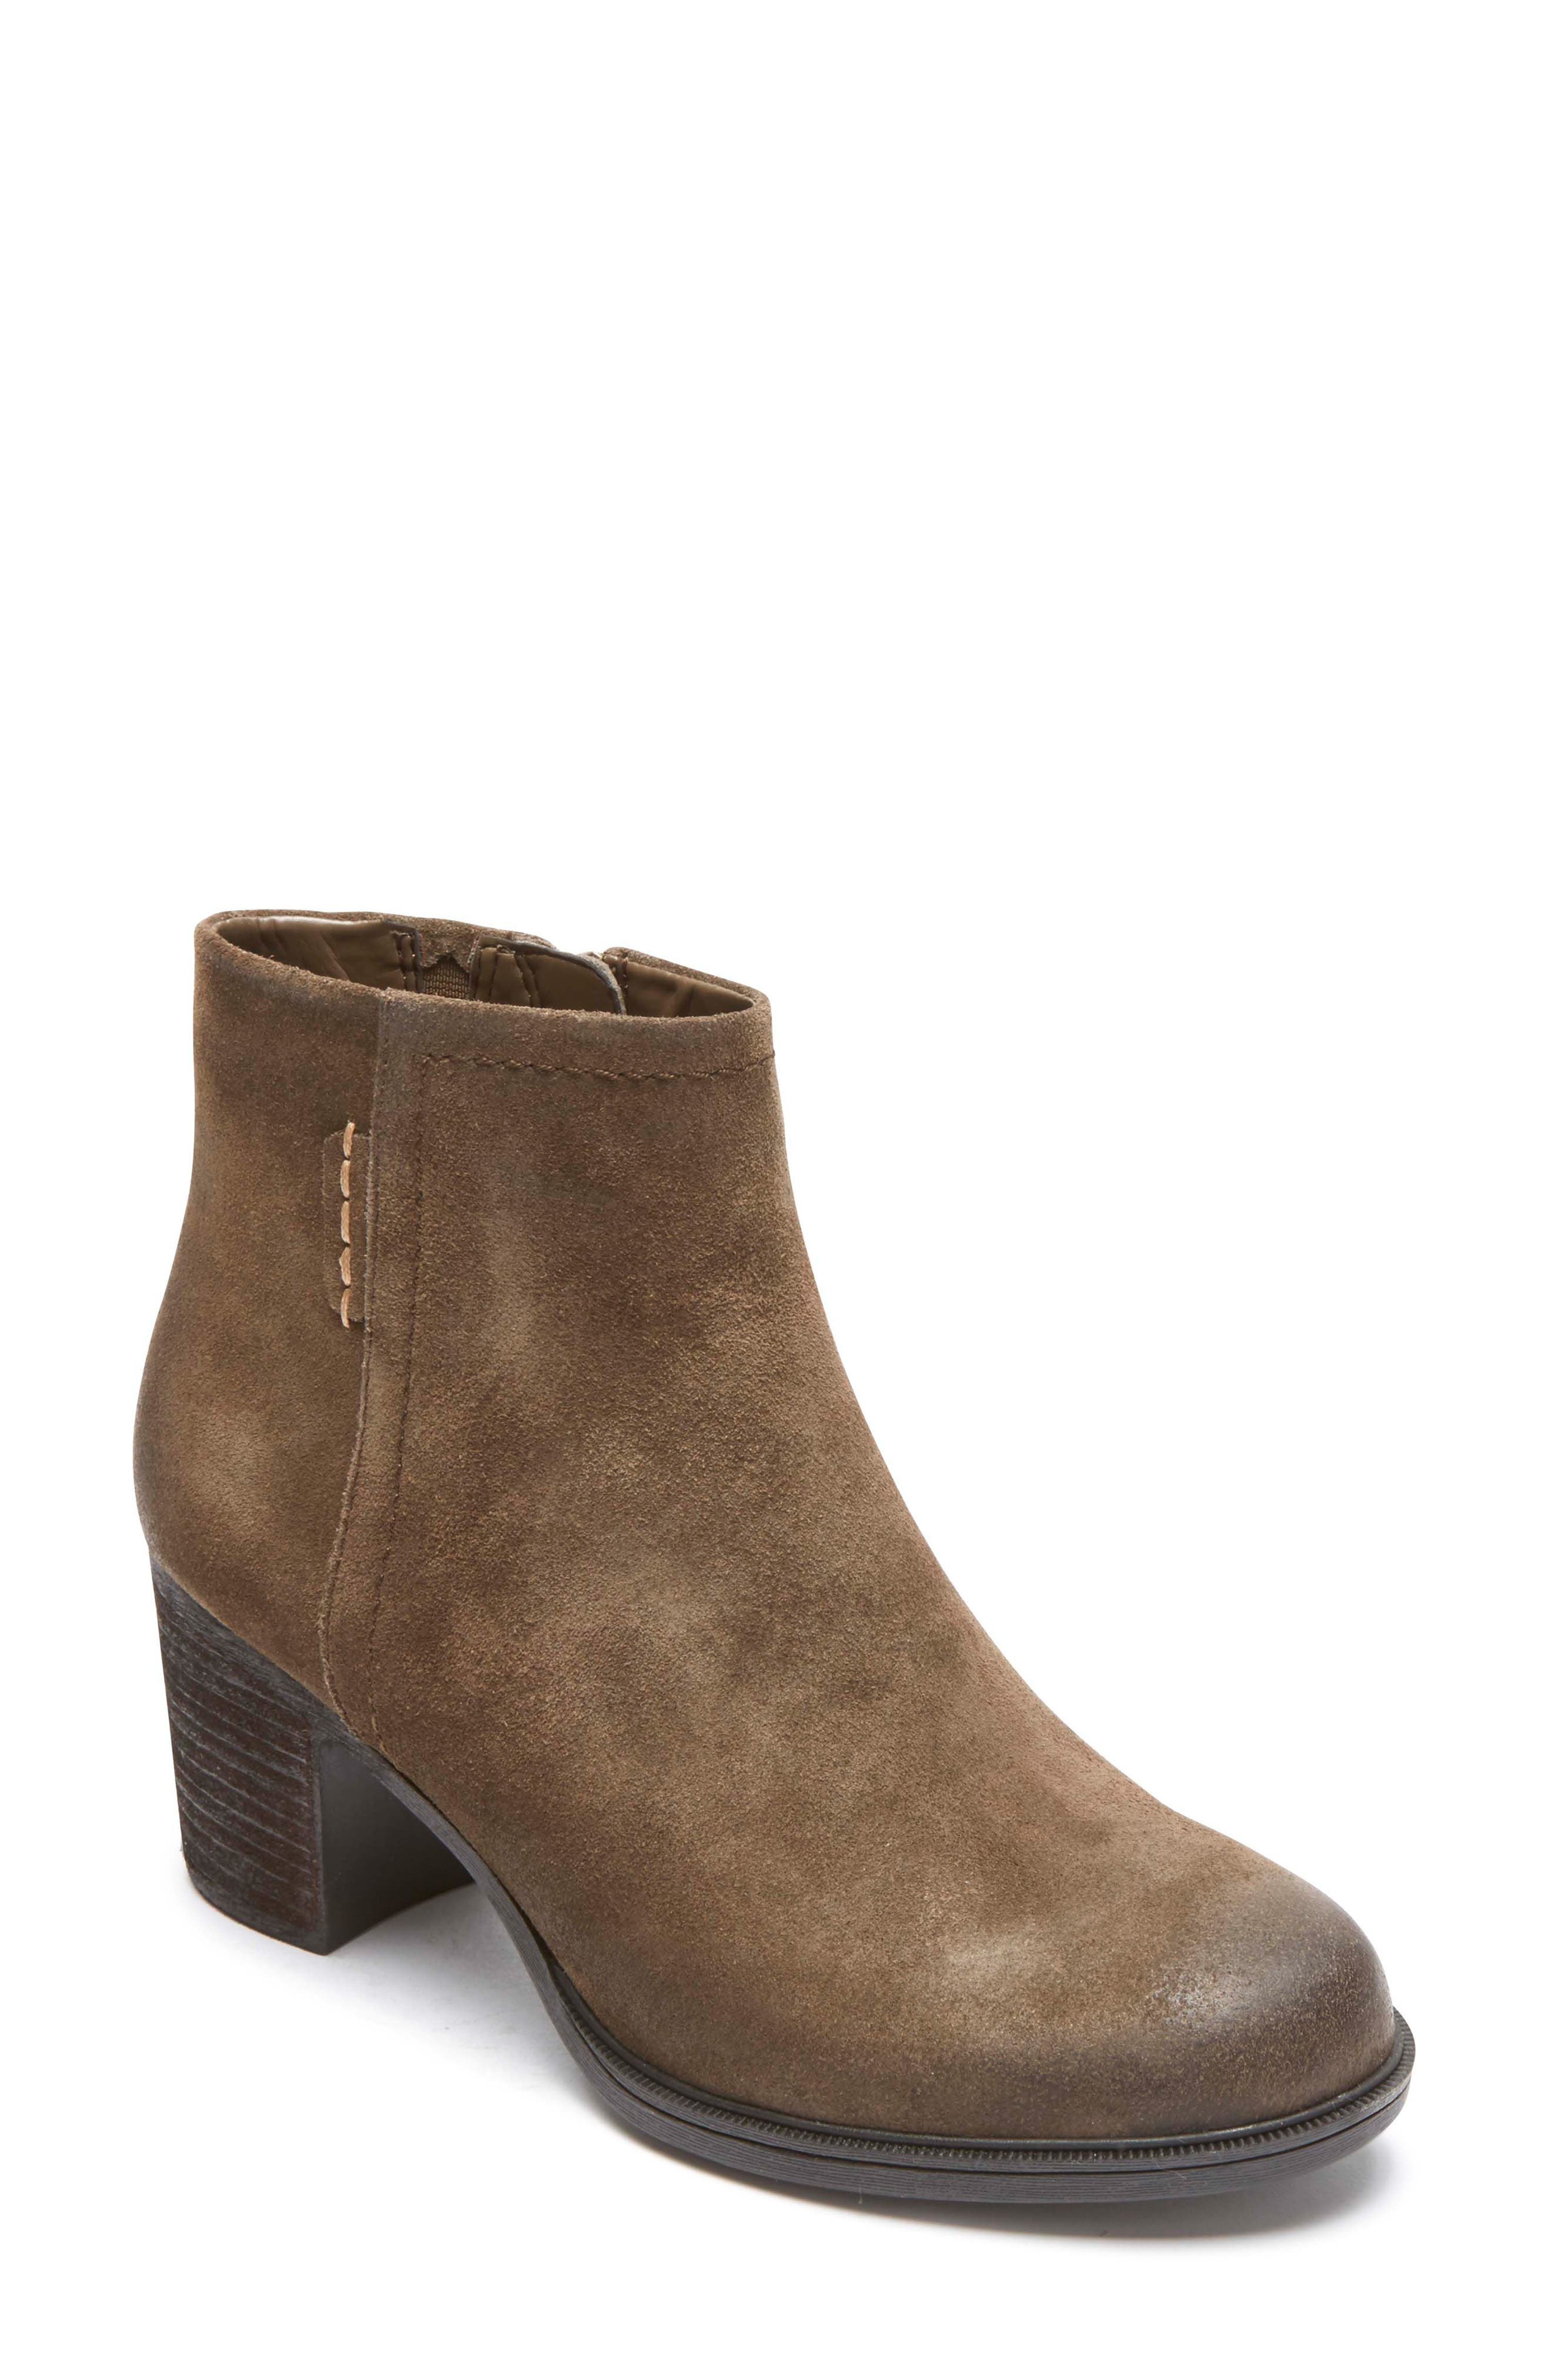 ea4d76718ca7 Women s Booties   Ankle Boots